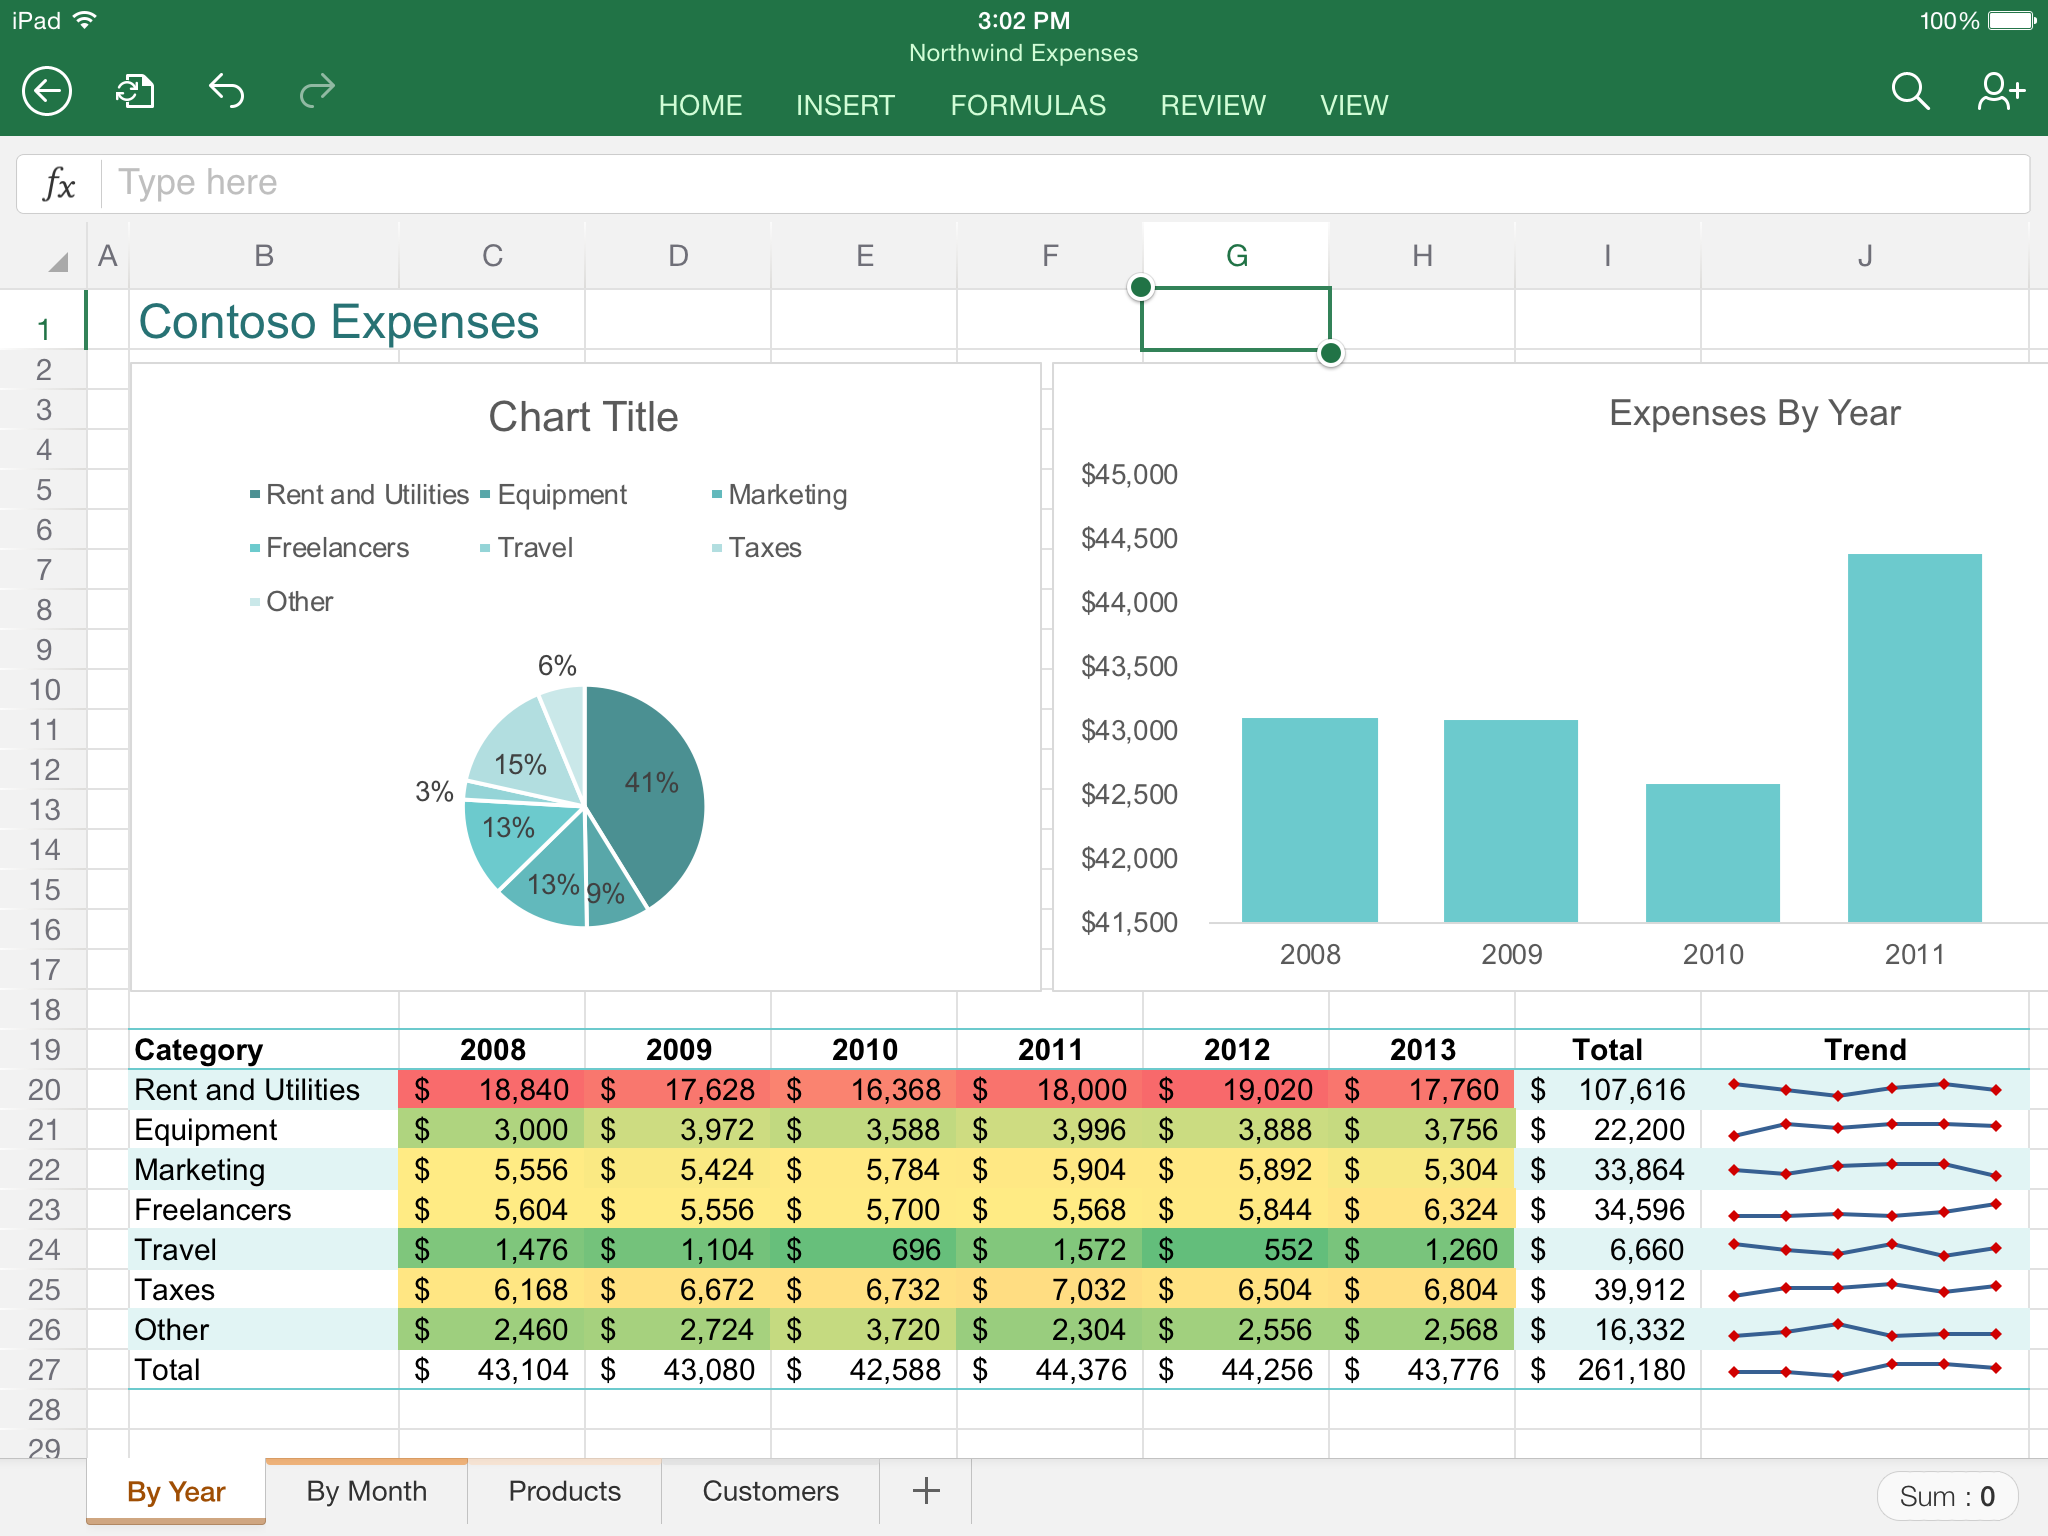 Ediblewildsus  Inspiring App Highlight Excel  Mobile Digital Now With Outstanding Excel In Action With Nice Excel  Help Also Month Excel In Addition Create Gantt Chart In Excel And Excel Distinct List As Well As Workday Excel Additionally How To Count Number Of Cells In Excel From Youstonybrookedu With Ediblewildsus  Outstanding App Highlight Excel  Mobile Digital Now With Nice Excel In Action And Inspiring Excel  Help Also Month Excel In Addition Create Gantt Chart In Excel From Youstonybrookedu